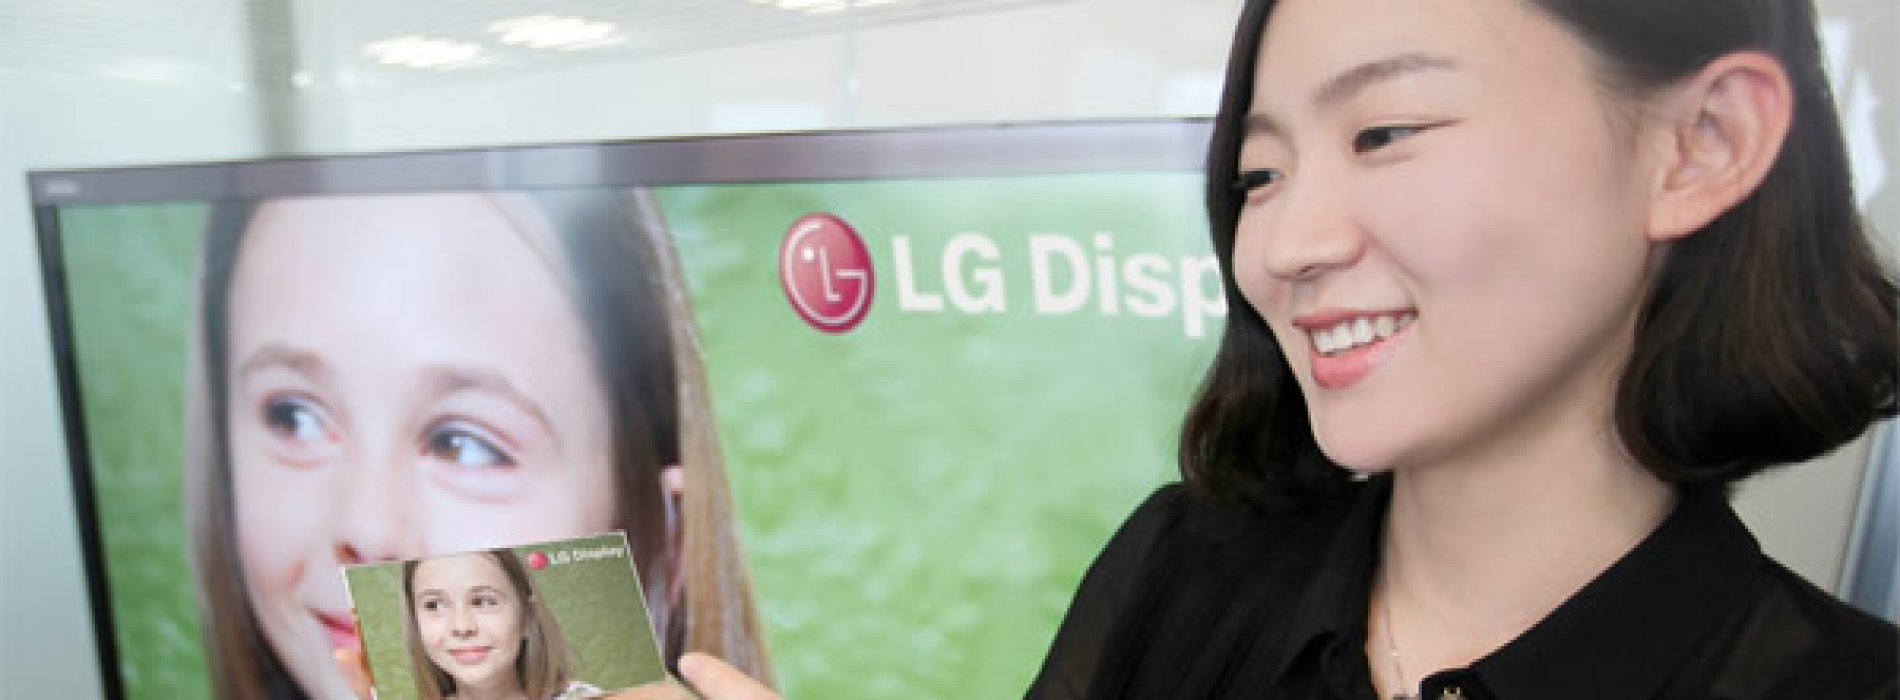 LG intros 5-inch 1080p display for smart devices